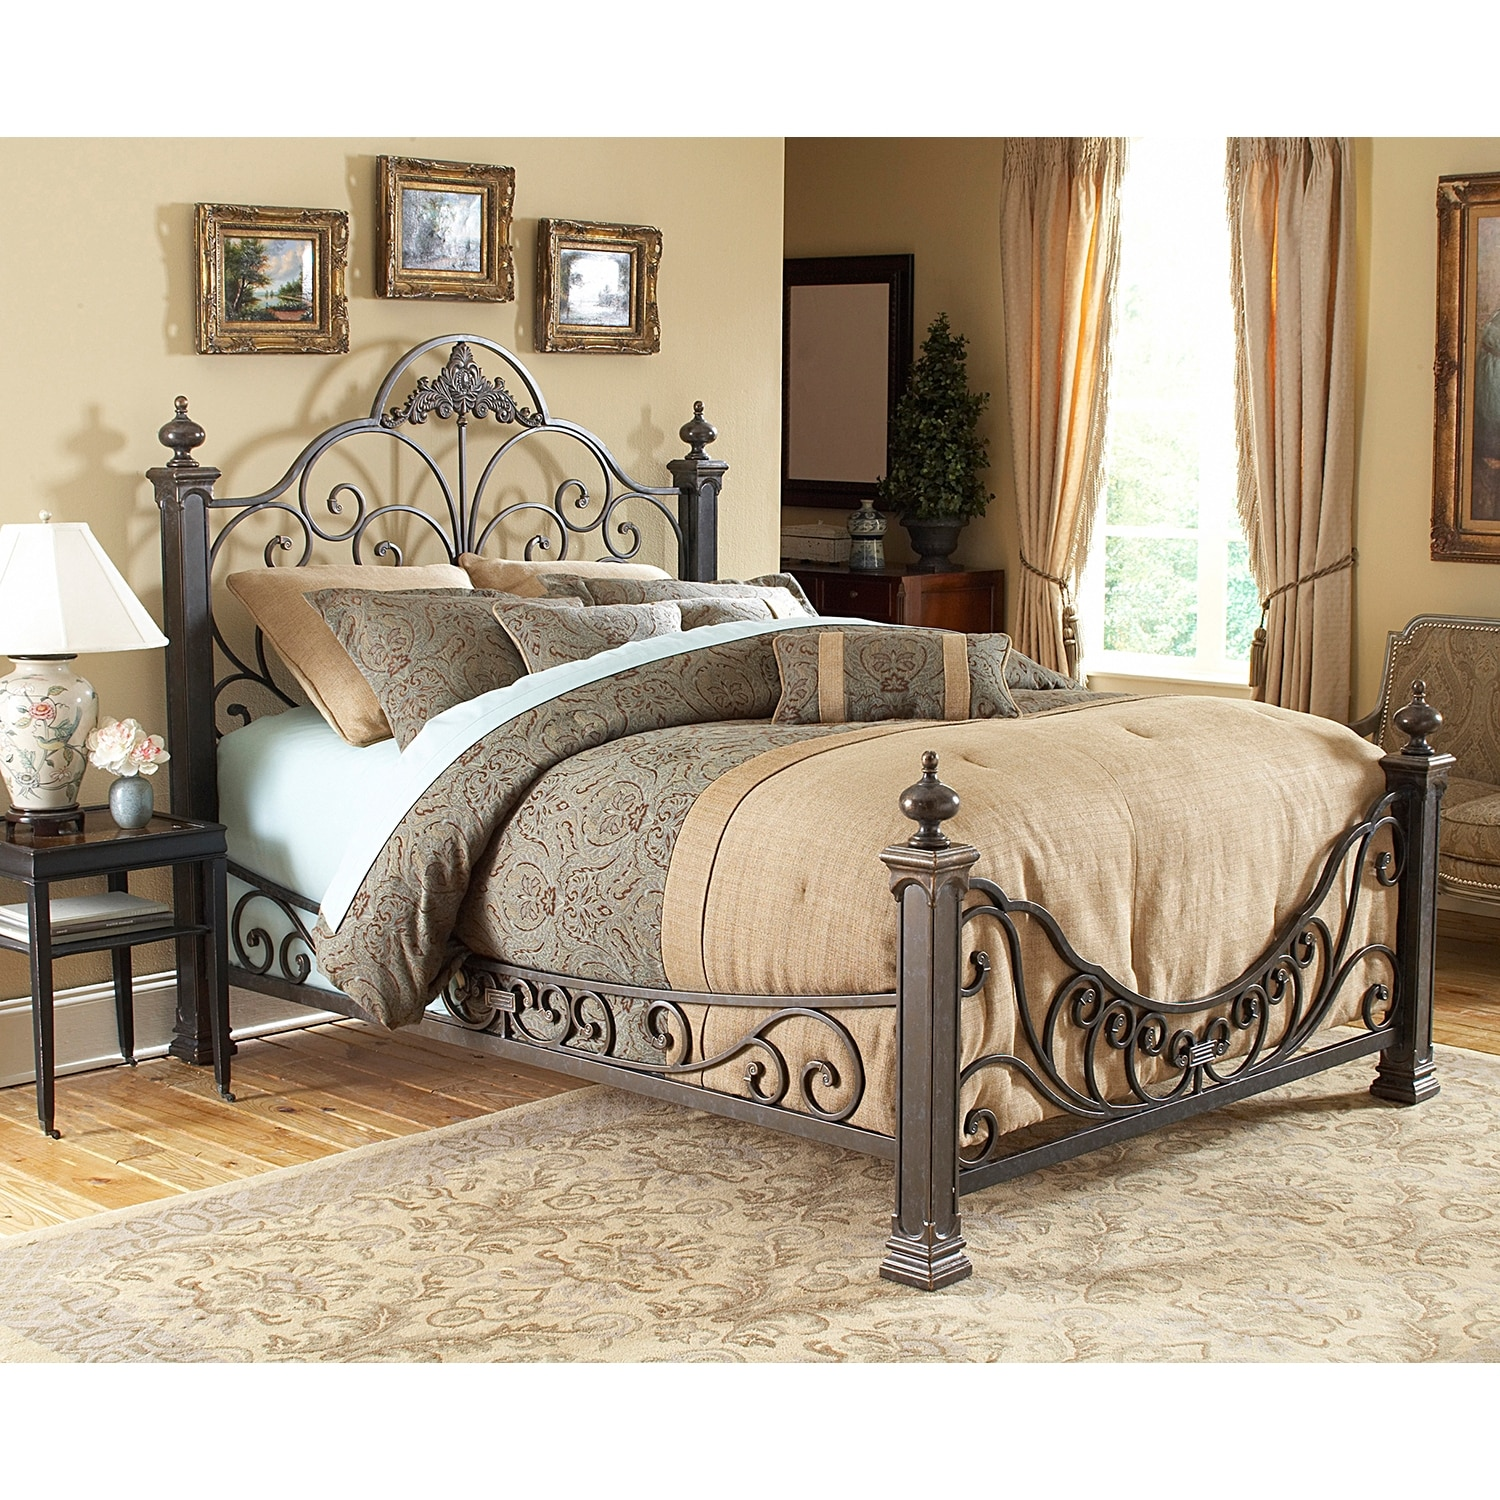 Bedroom Furniture - Talon King Bed - Gilded Slate